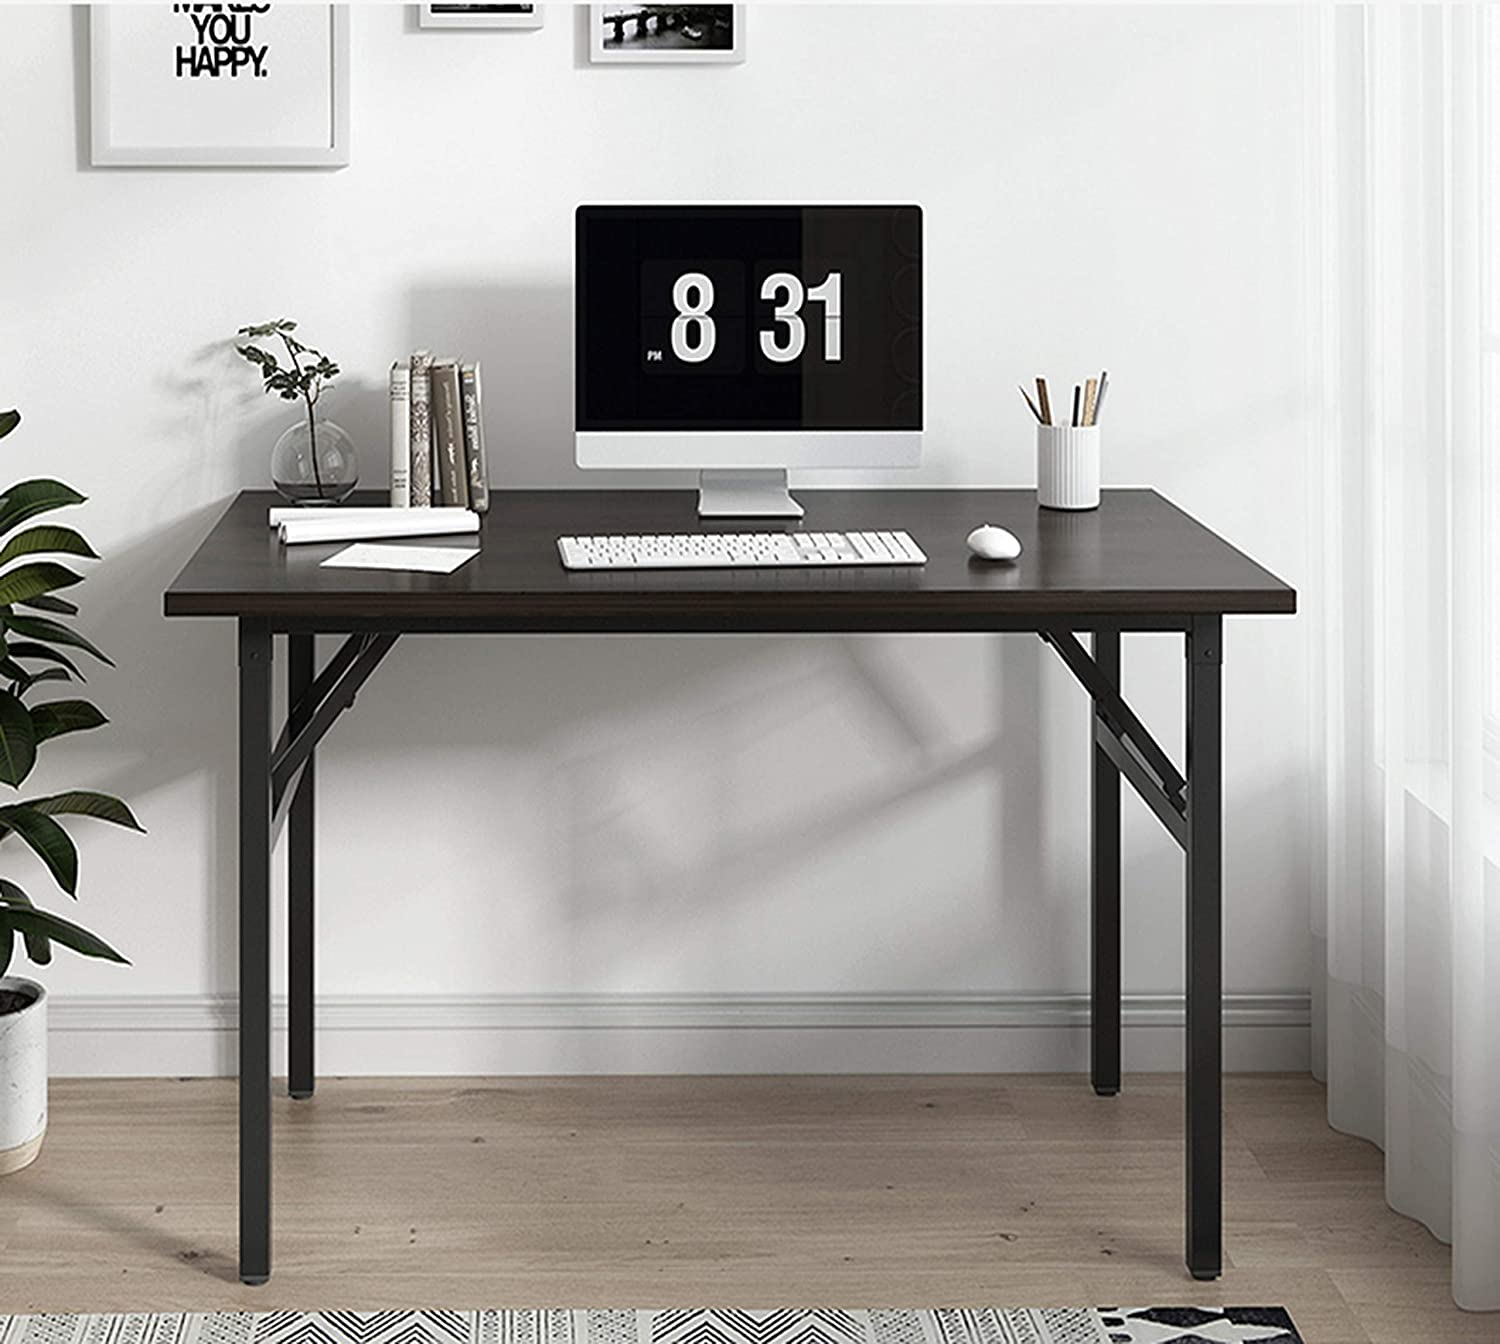 """31"""" Folding Commercial Table Training Table Folding Computer Desk Workstation Folding Laptop Table,Home Office Desk, No Assembly Needed,Rustin Brown"""